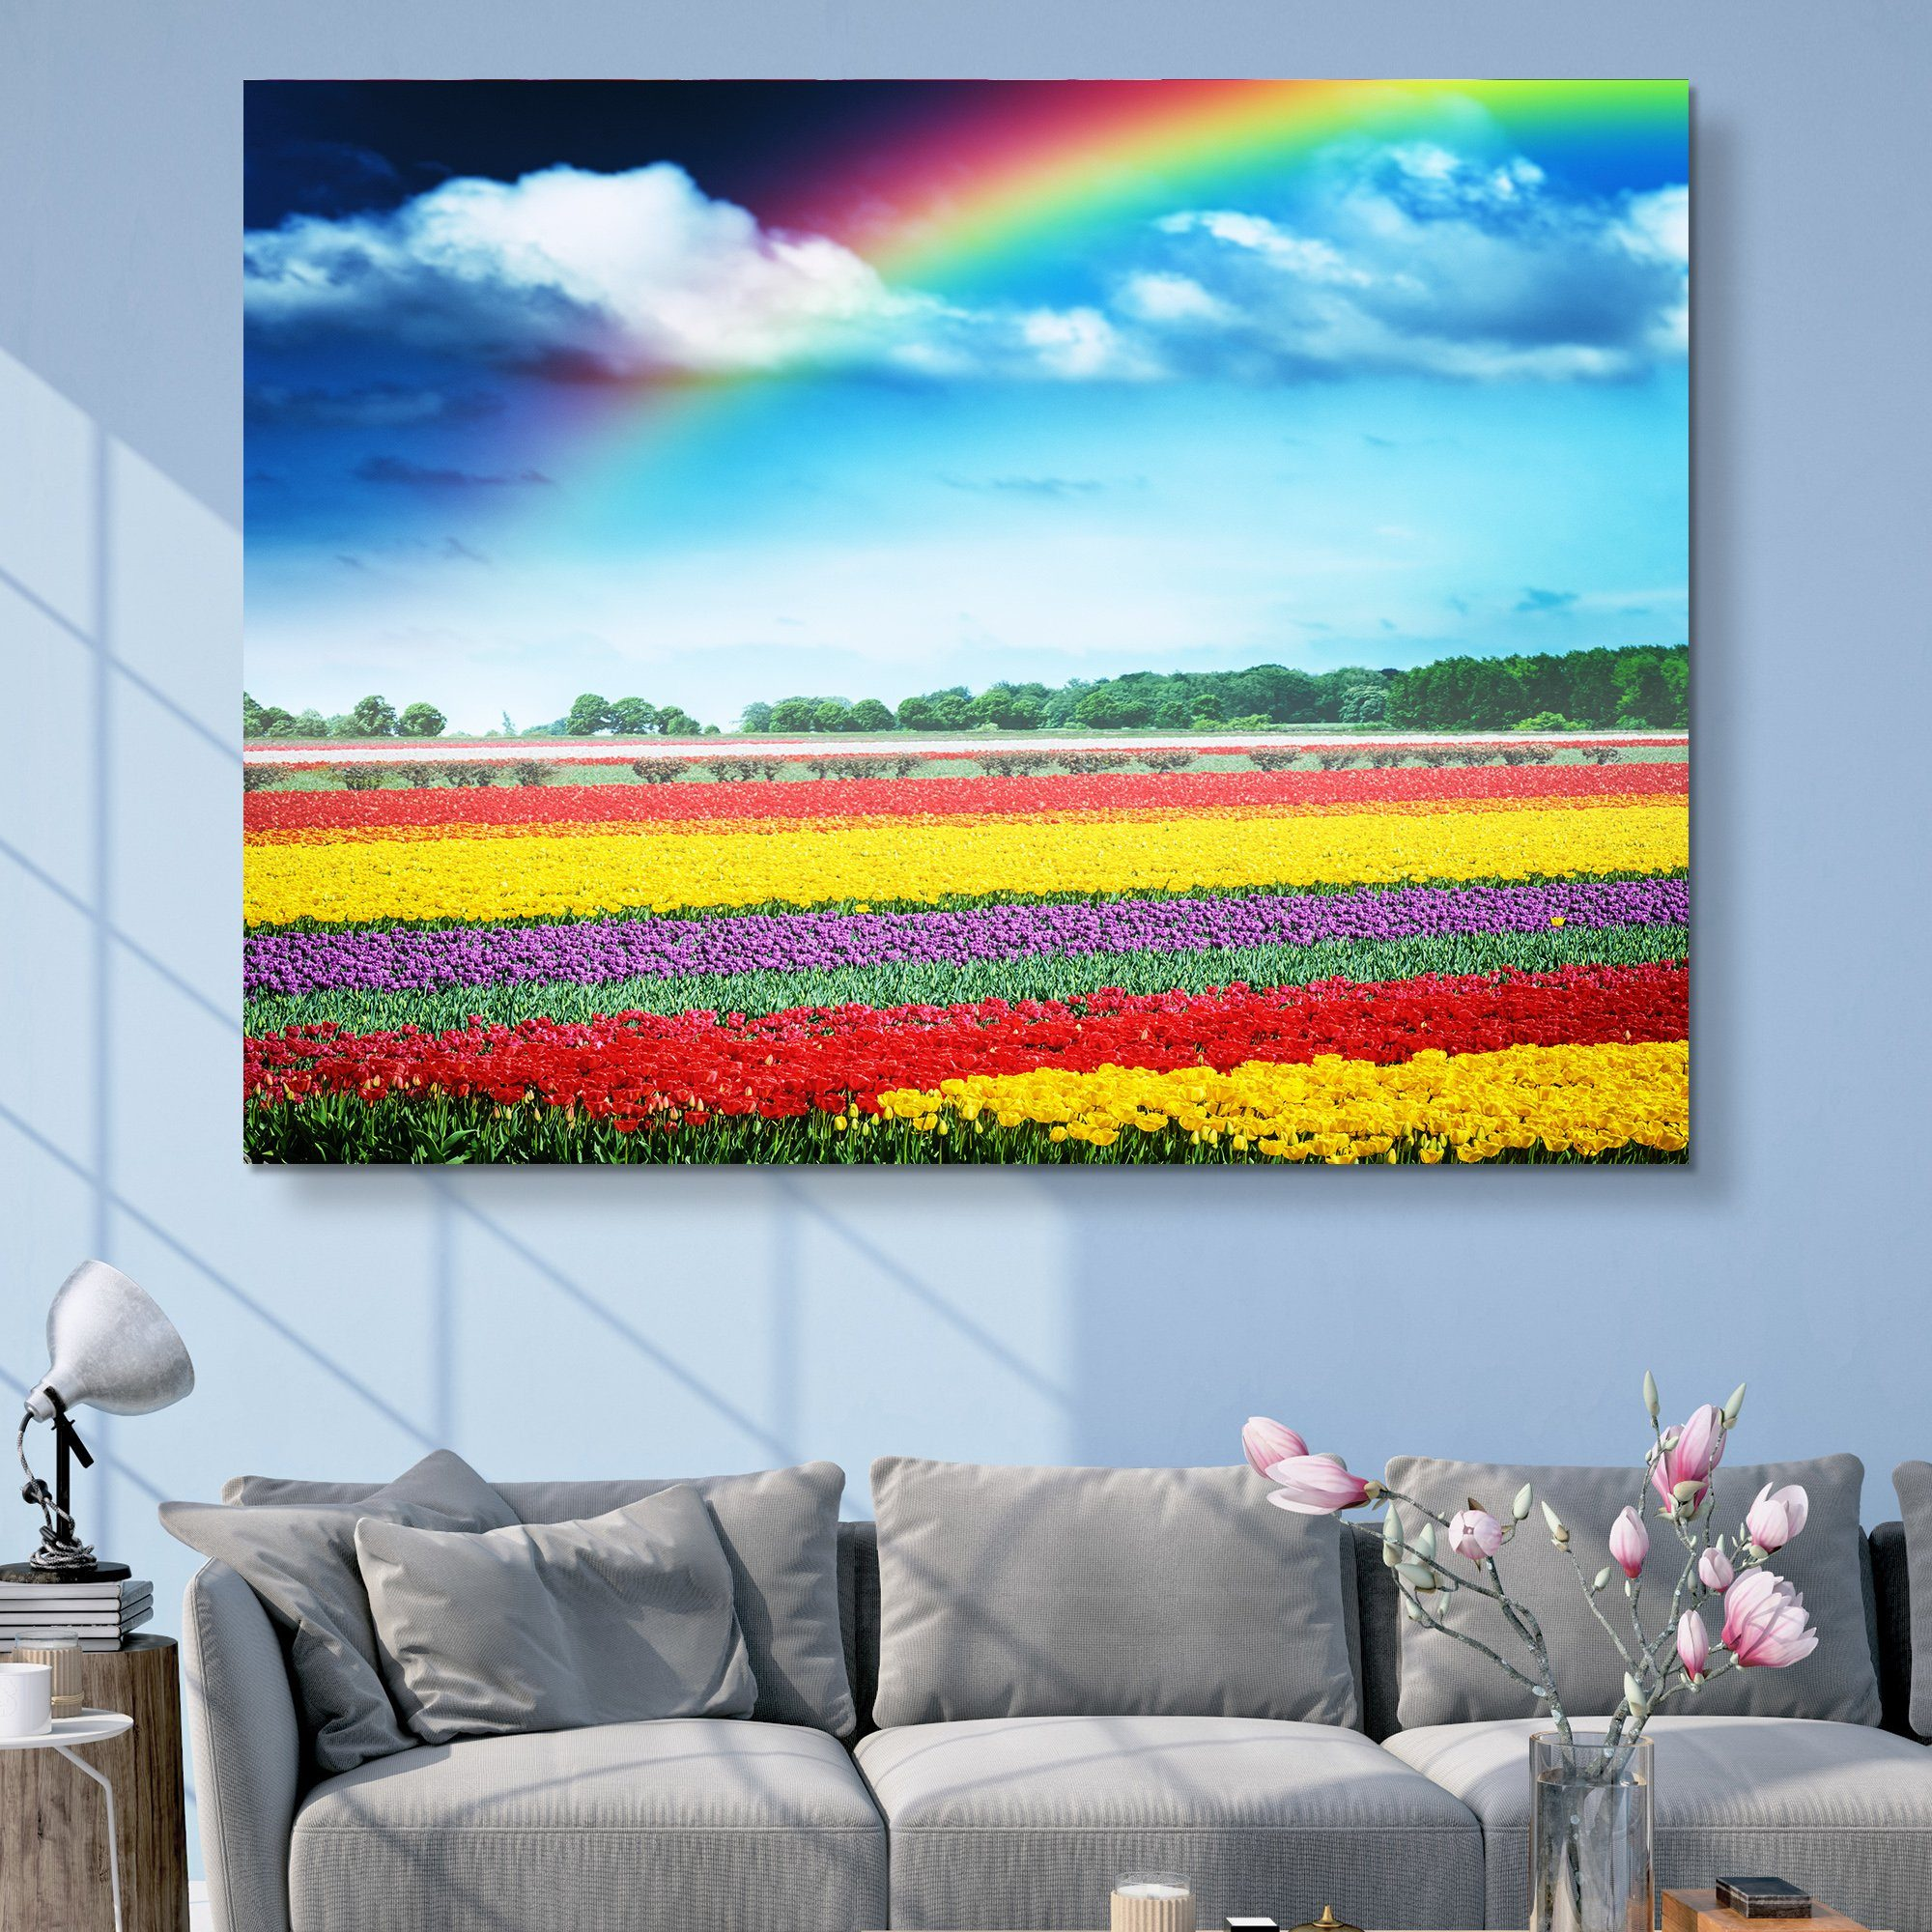 Rainbow Over Tulips wall art